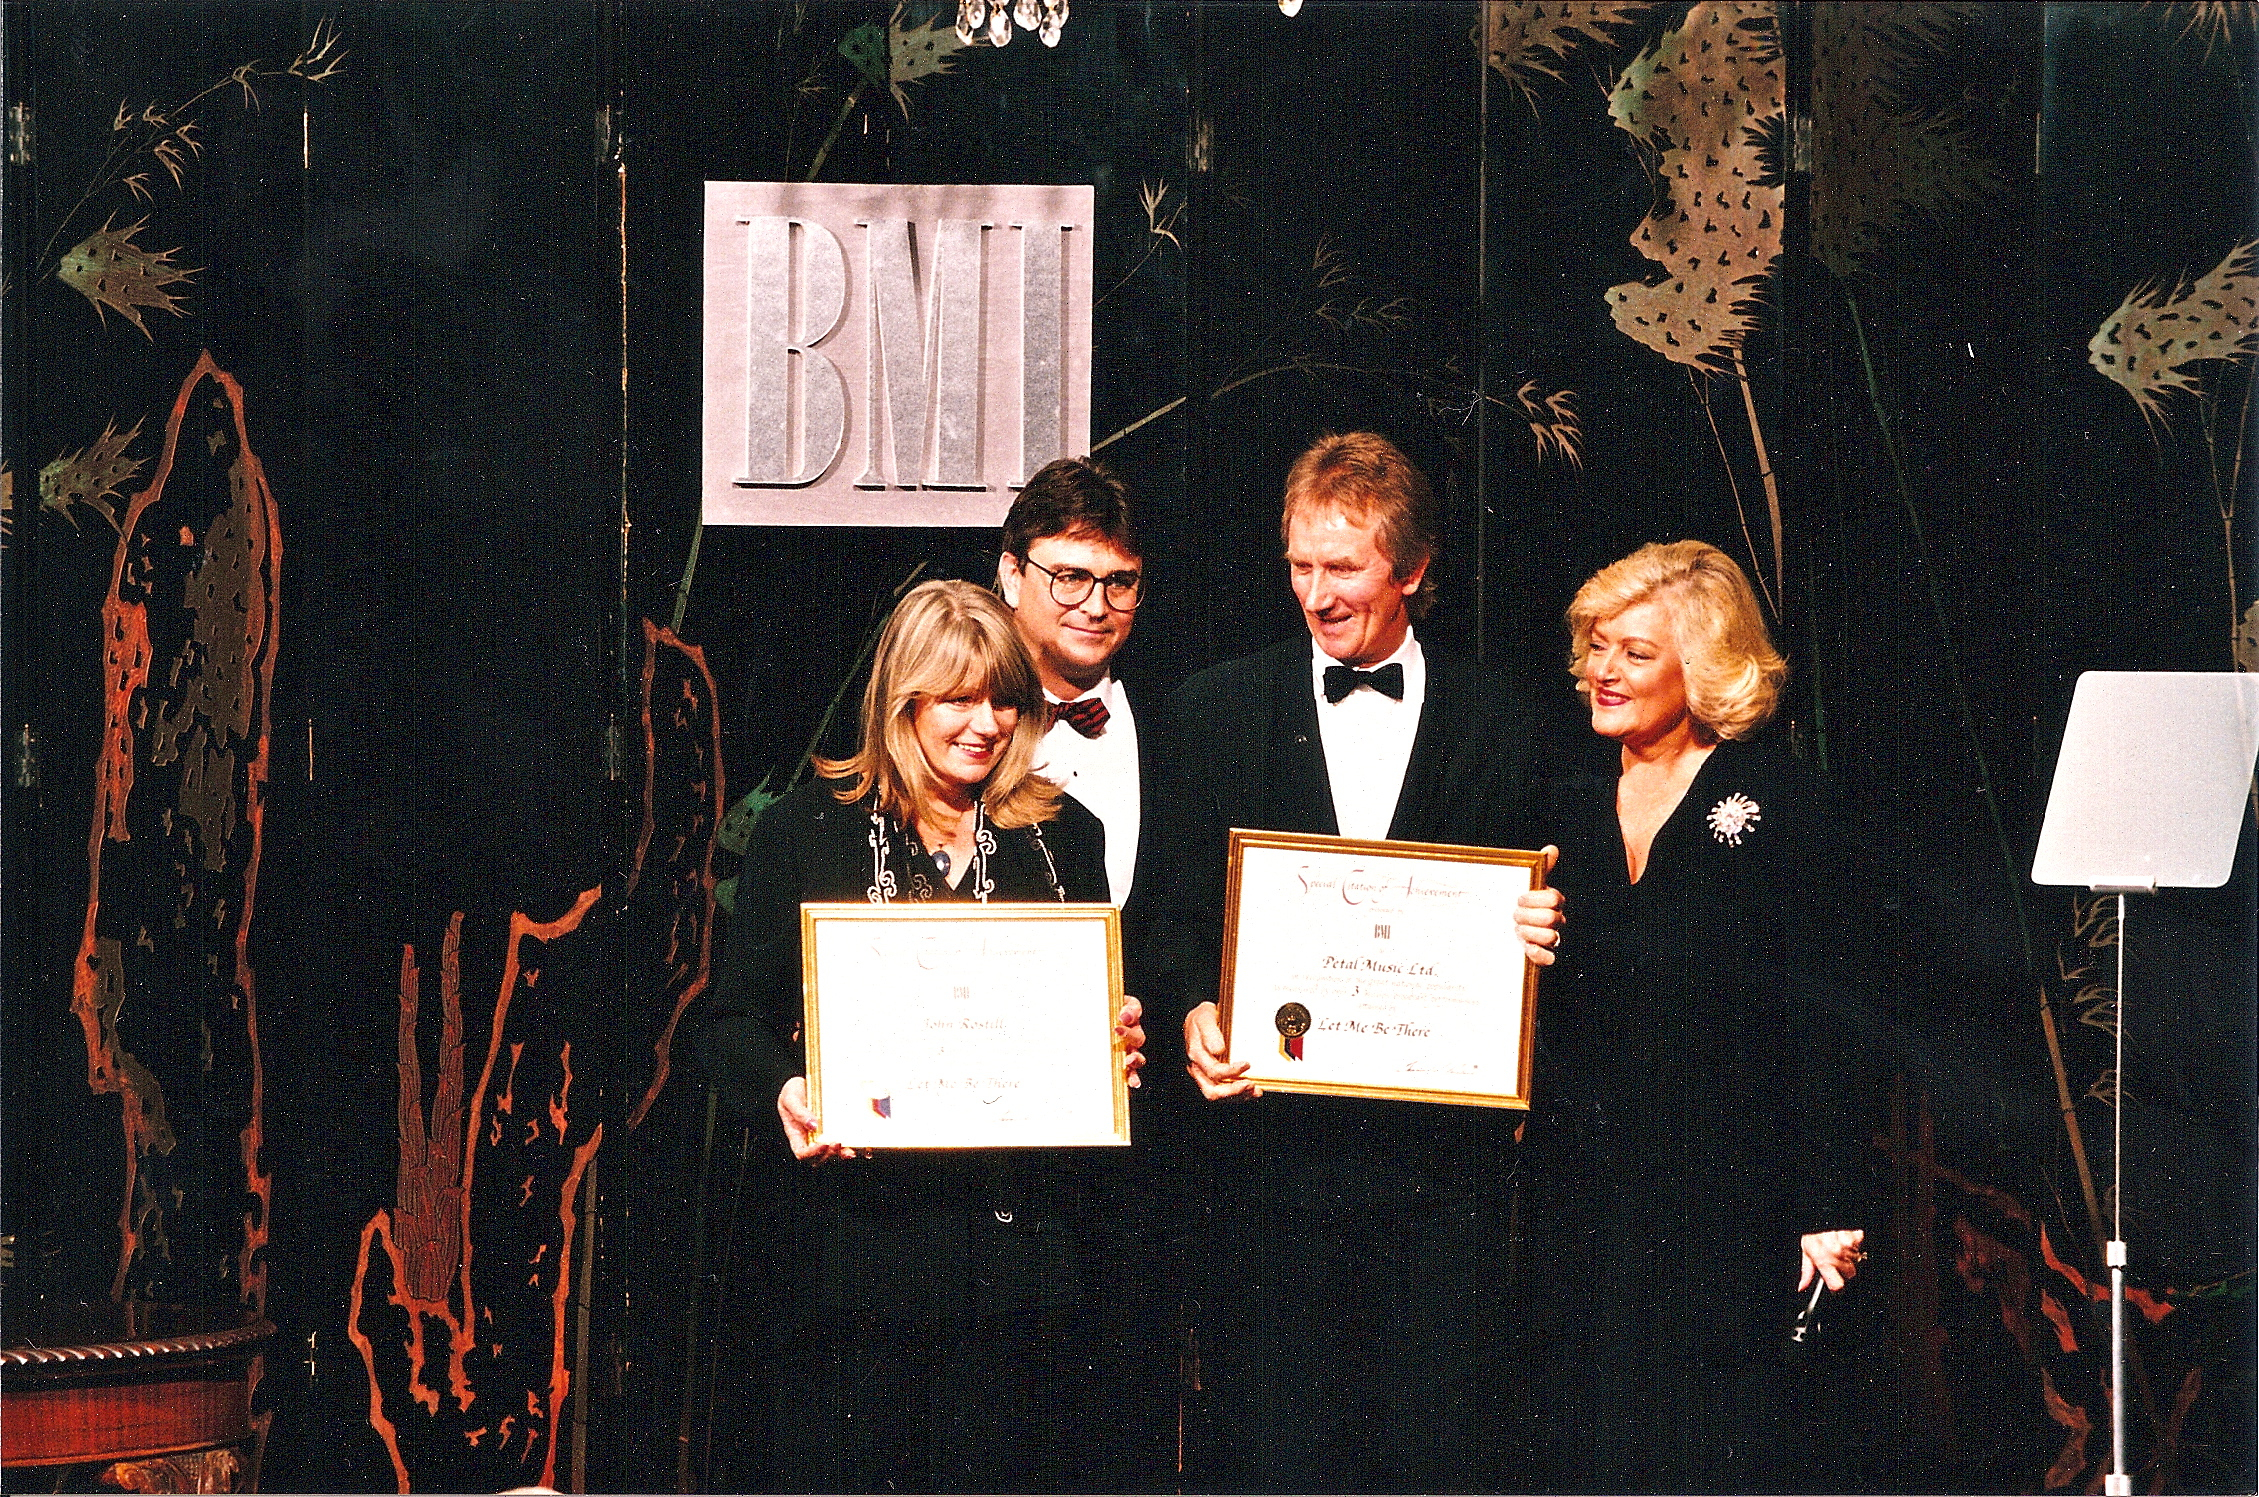 AWARDS - John Rostill's widow Margaret and I pick up a BMI award for John's song LET ME BE THERE jpg copy.jpg